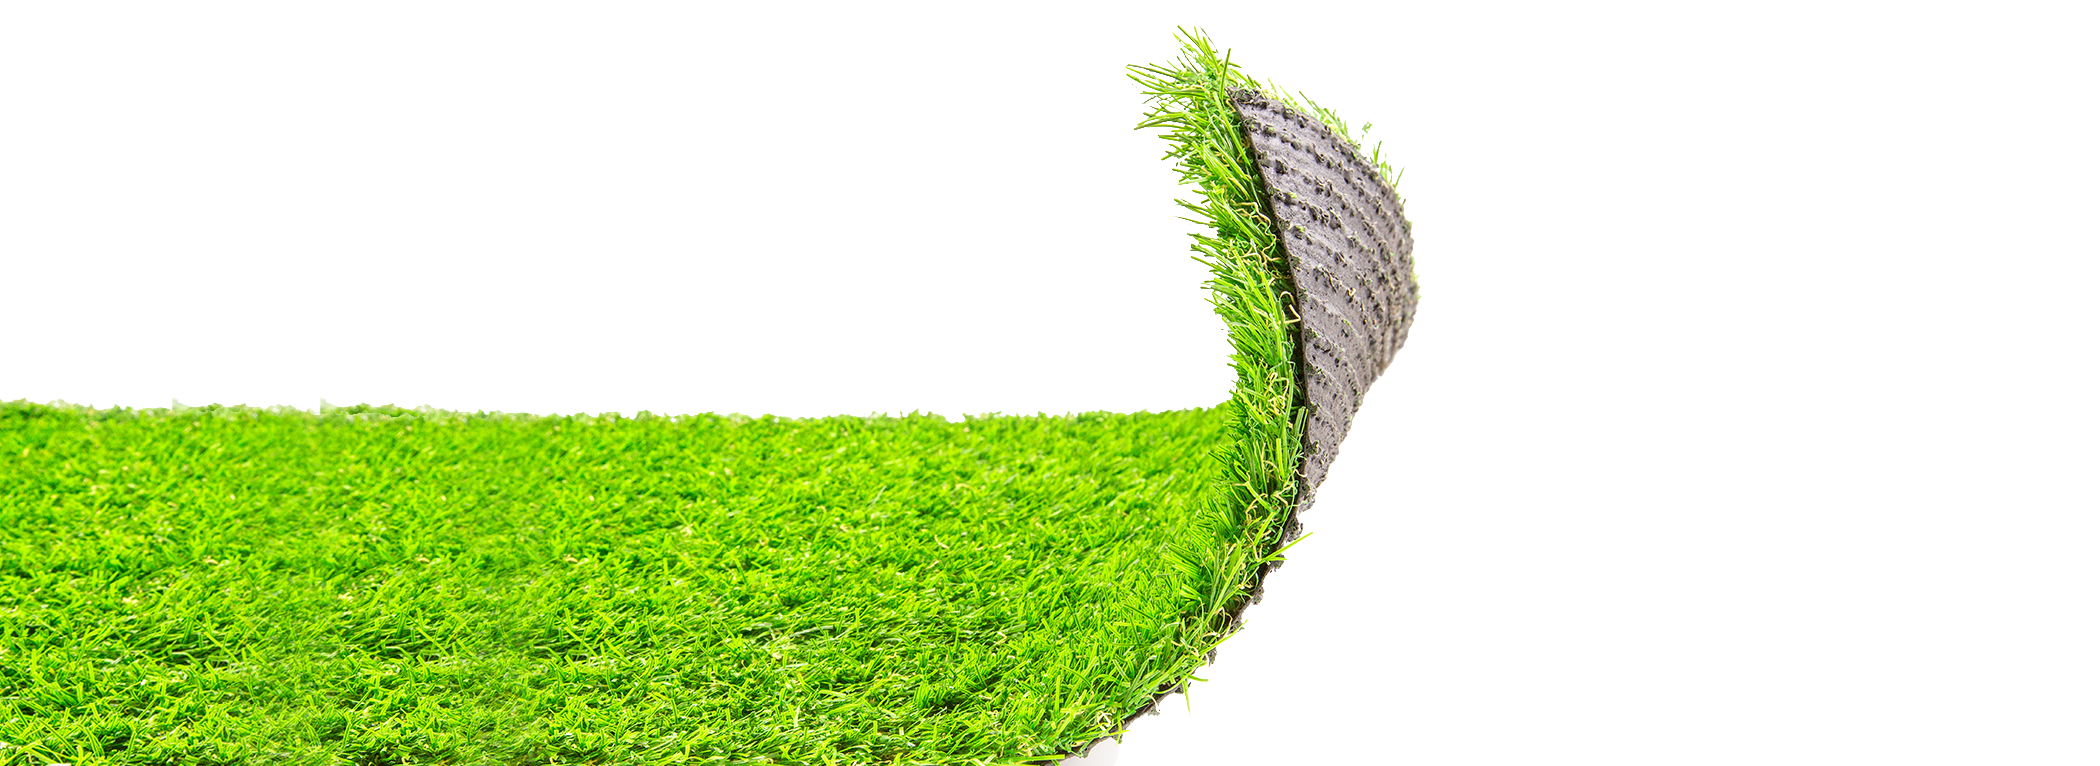 Home synthetic turf depot. Hills clipart carpet grass